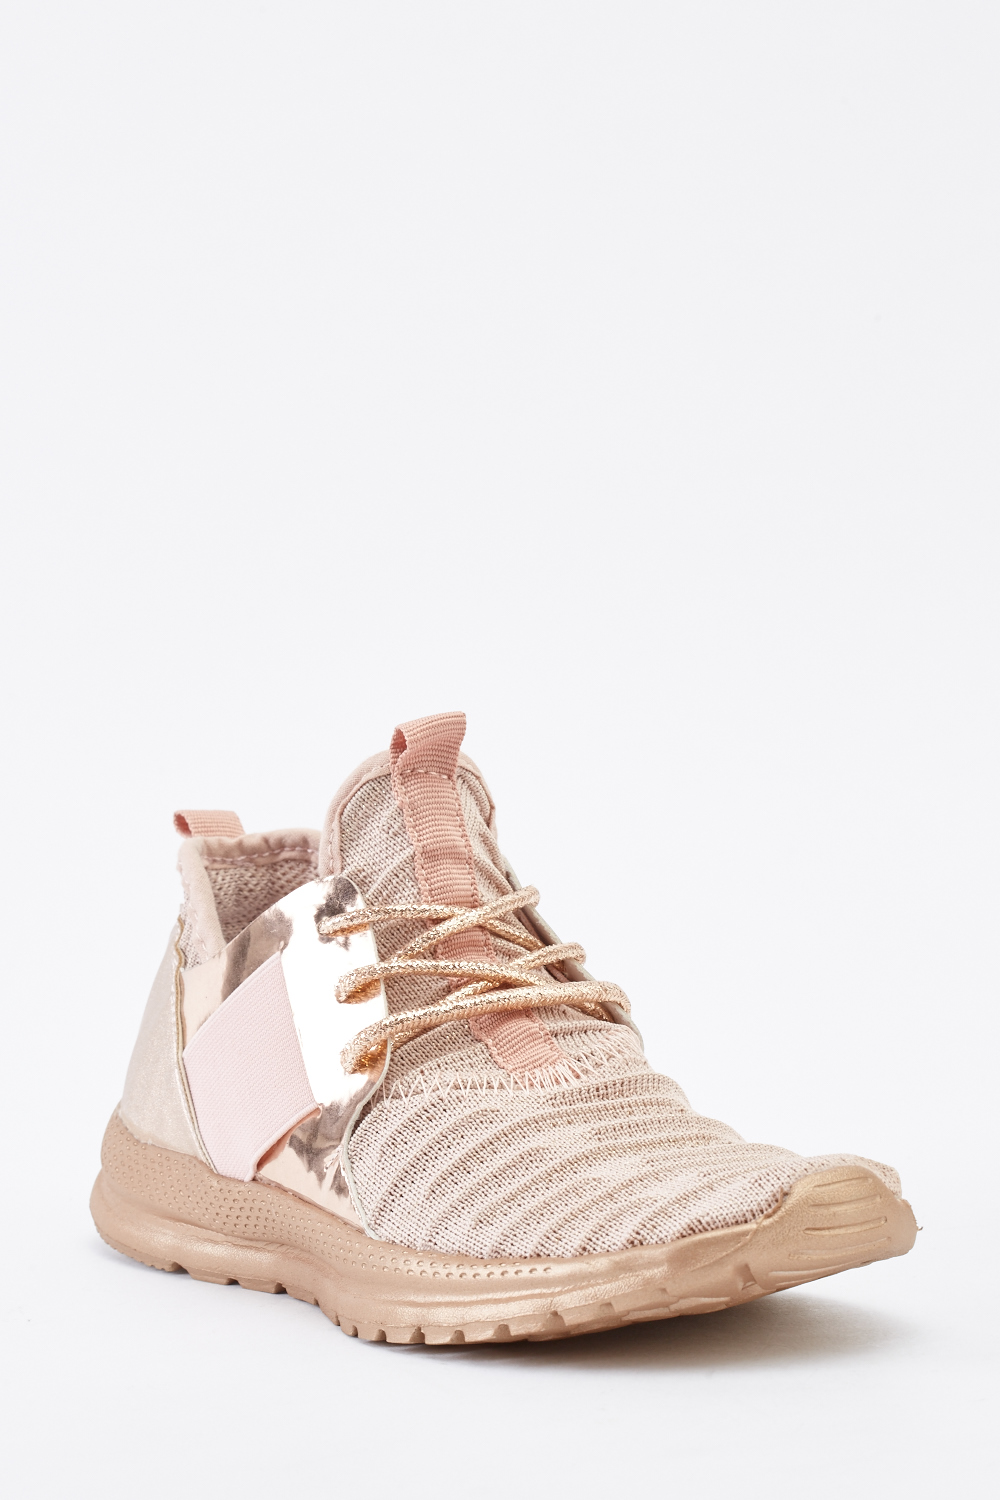 faeeebe1588ff Contrast Metallic Lace Up Trainers - Just £5